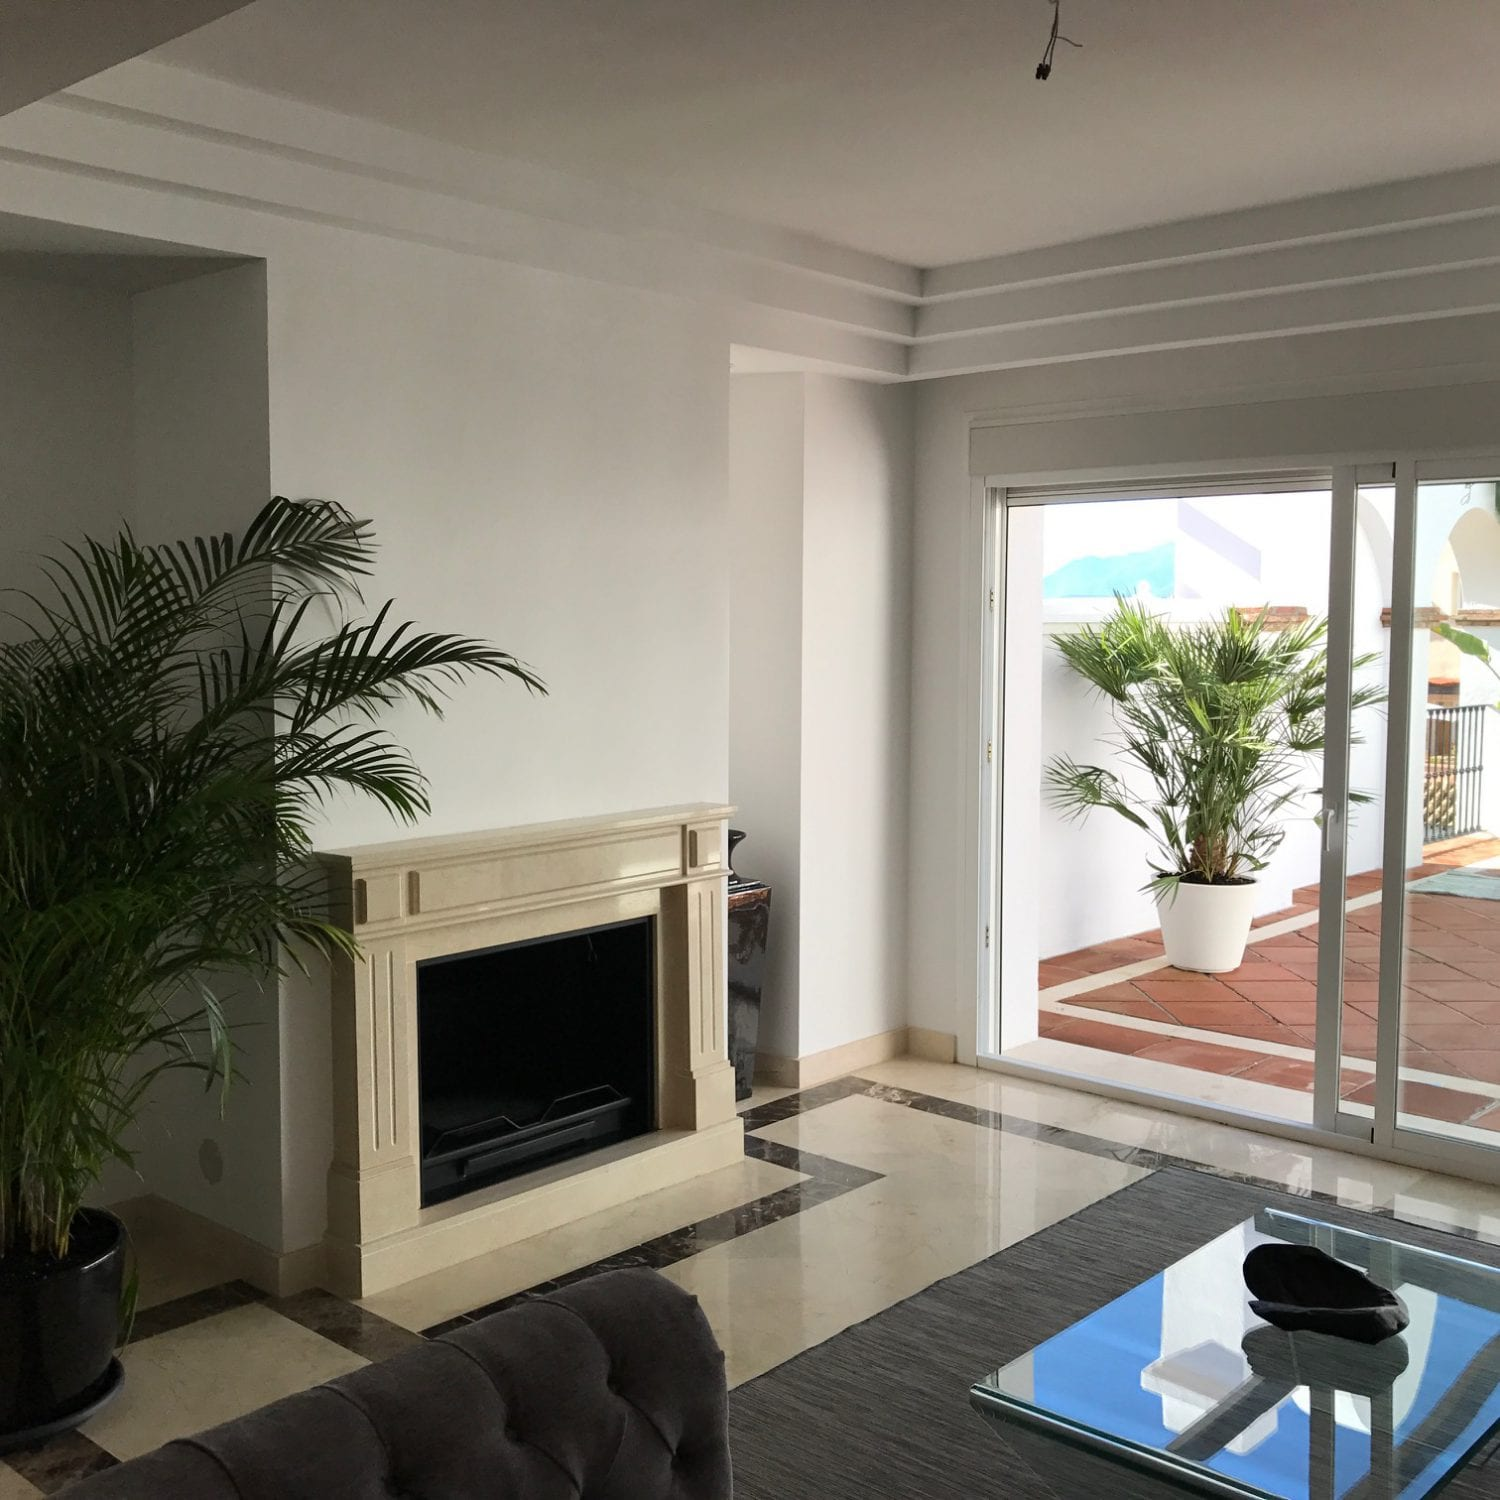 Marbella Hillside 2 3 and 4 bedroom apartments with sea and mountain views